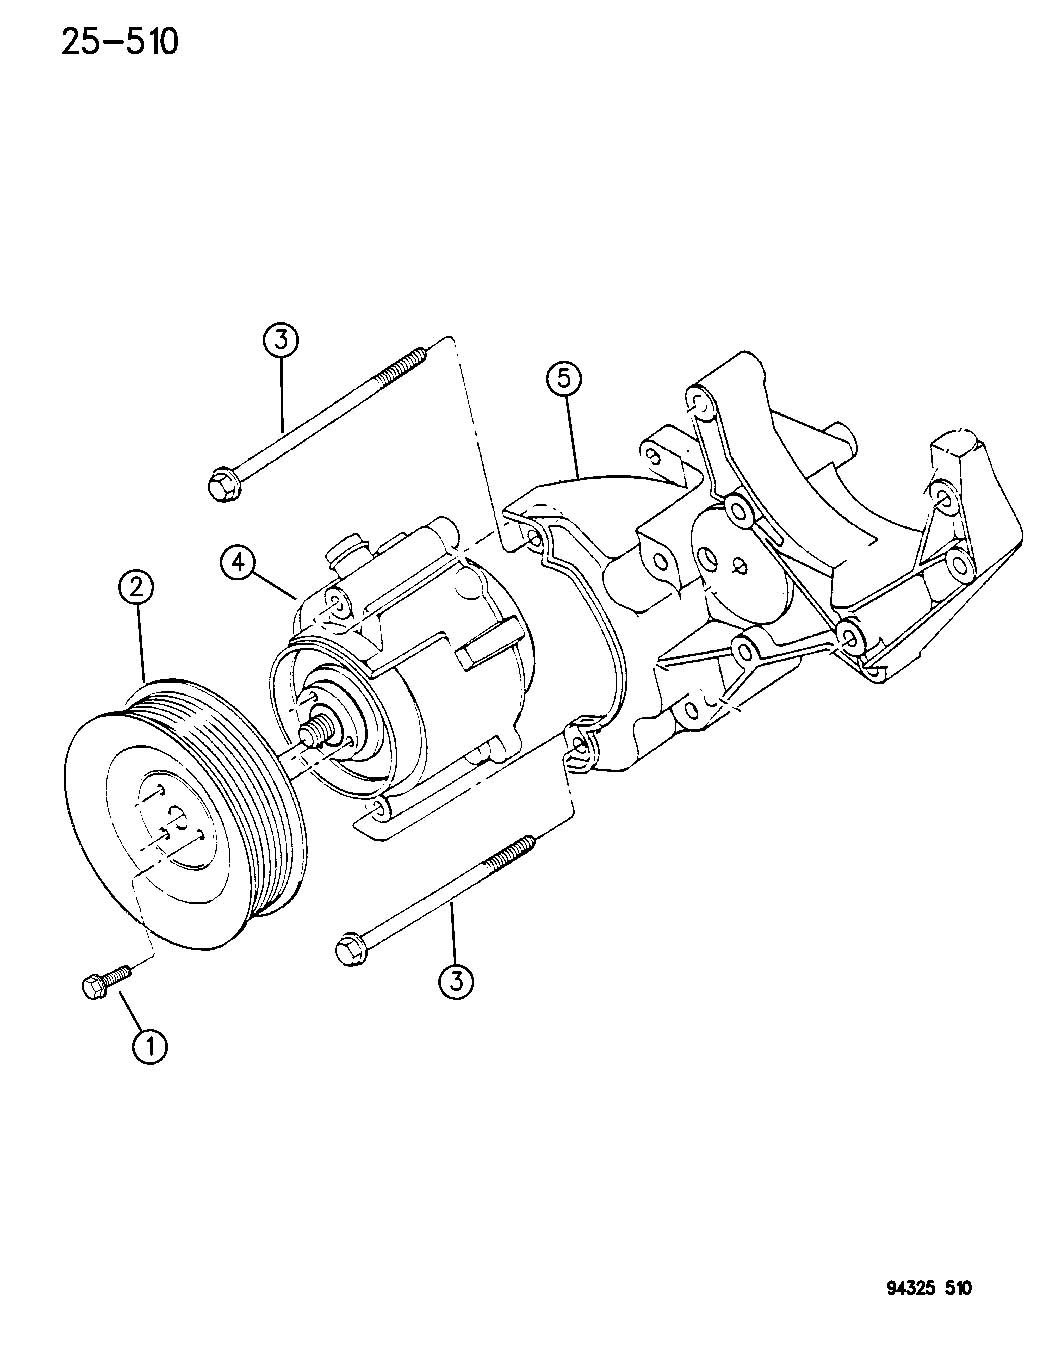 Diagram AIR PUMP R BODY for your Dodge